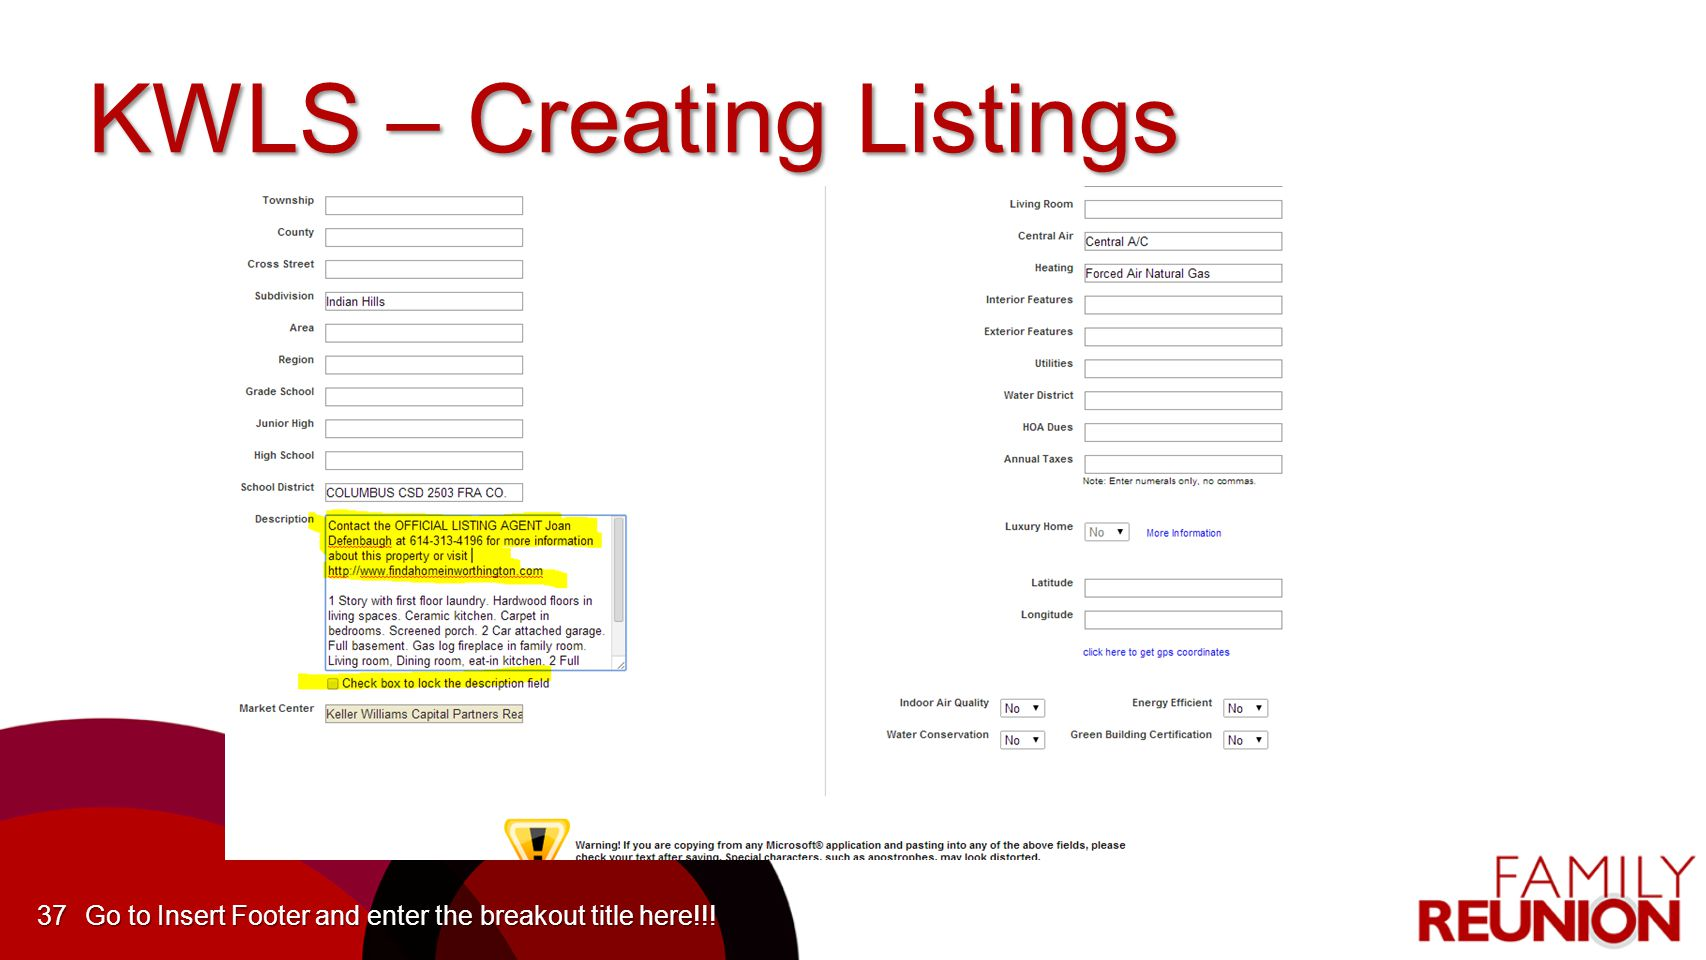 Go to Insert Footer and enter the breakout title here!!!37 KWLS – Creating Listings